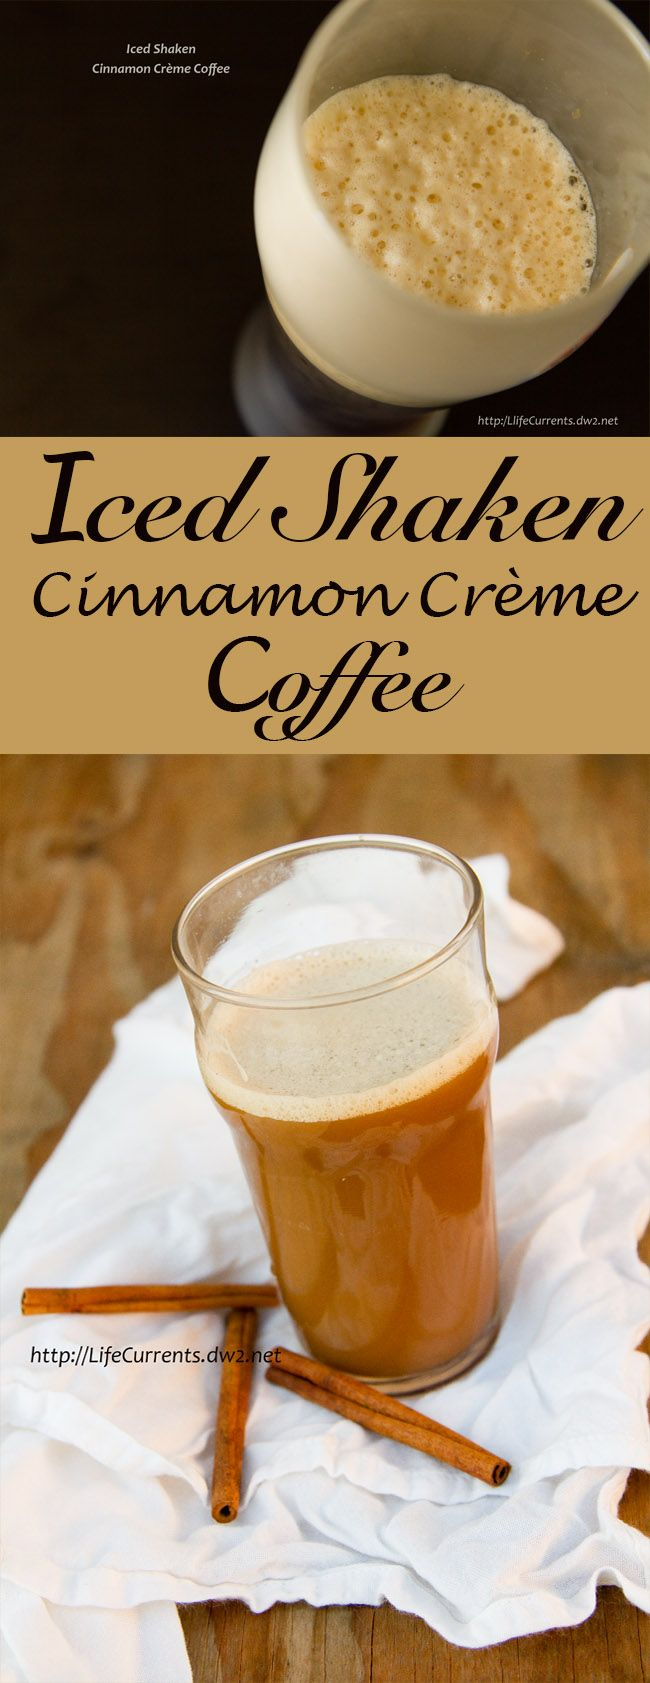 Iced Shaken Cinnamon Crème Coffee by Life Currents. We love to make shaken coffee around here, especially in the summer!